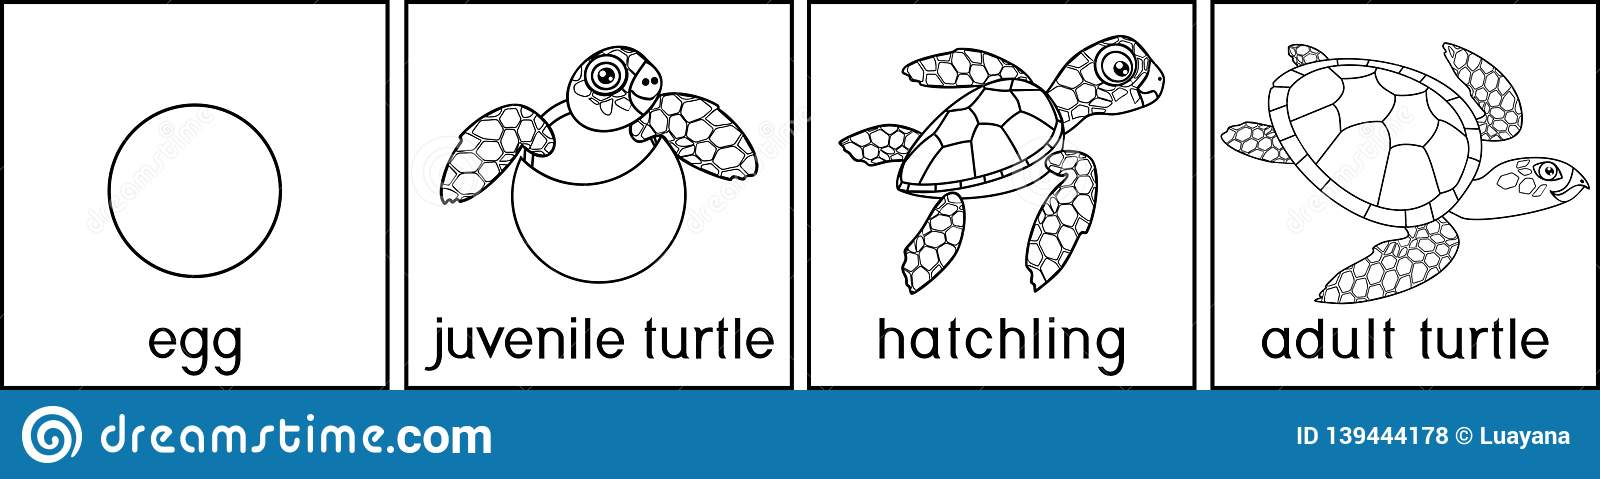 Coloring Page With Life Cycle Of Turtle. Sequence Of Stages ...